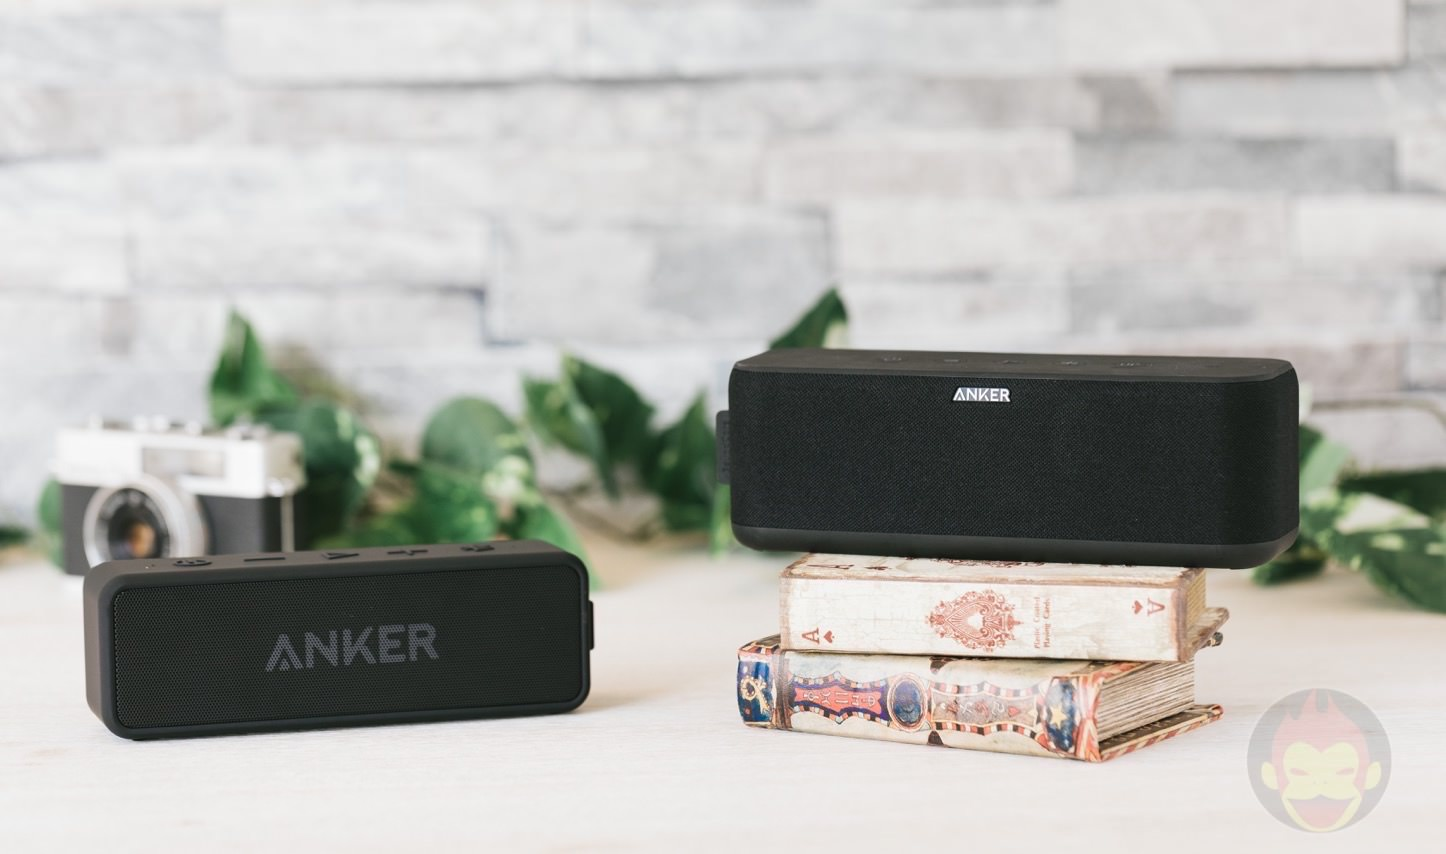 Anker-SoundCore-Boost-2-New-Models-2017-10.jpg